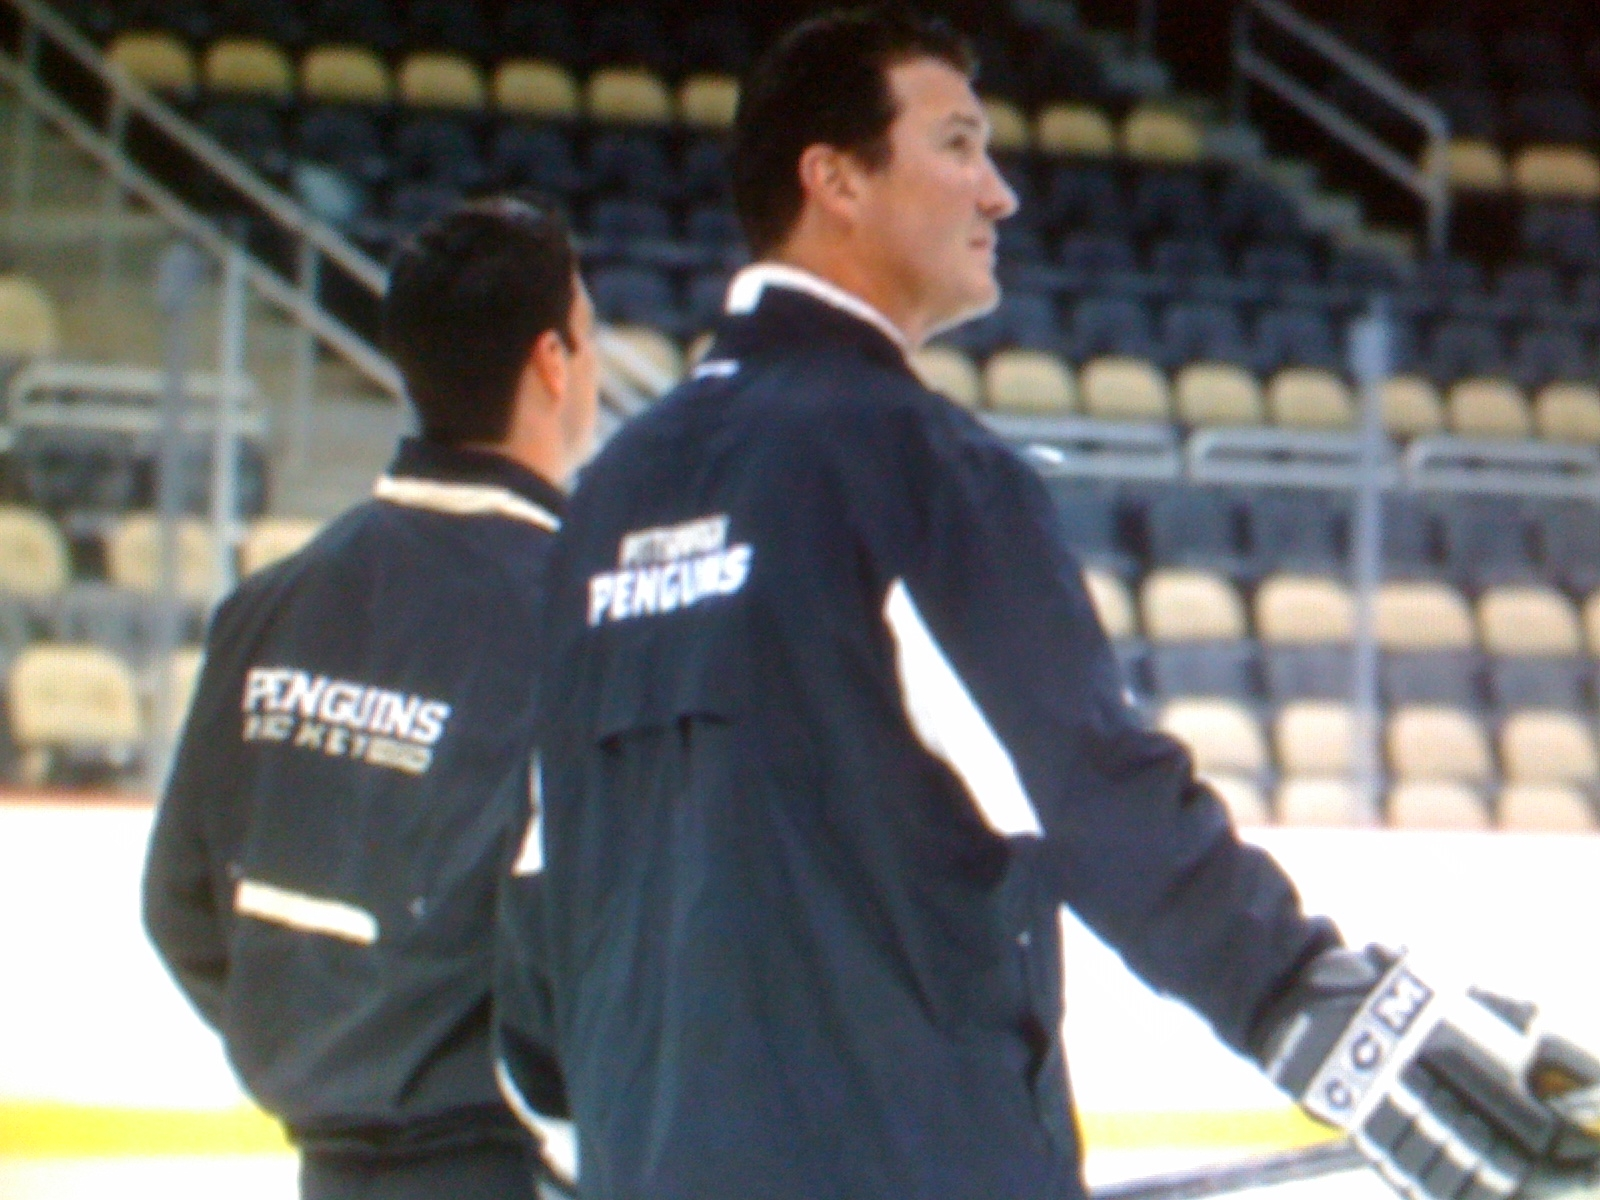 Crosby and Lemieux Christen the Consol Energy Center Ice